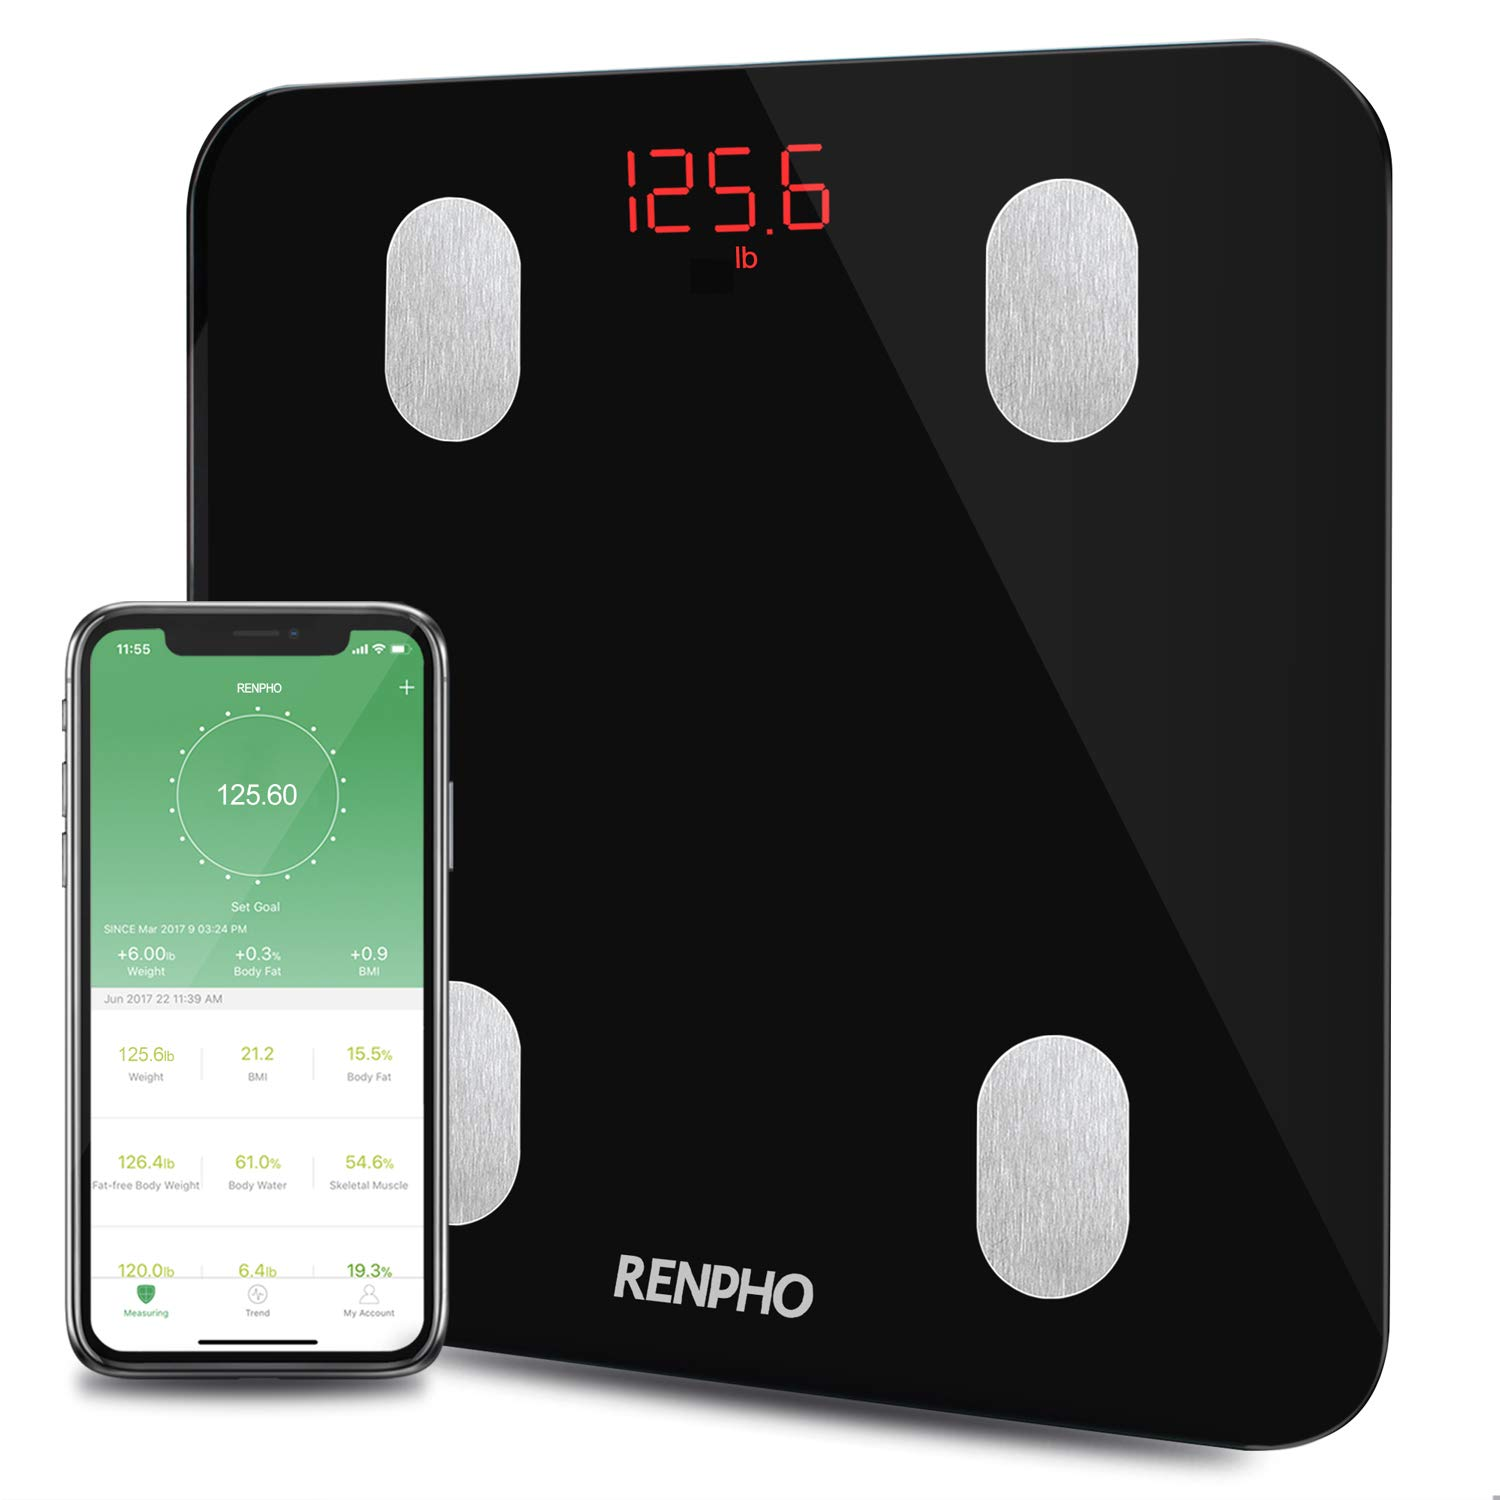 RENPHO Bluetooth Body Fat Scale Smart Digital Bathroom Scale Wireless Weighing Body Composition Analyzer Health BMI Scale with Smartphone APP, Weight, Body Fat Monitor, 396 lbs/180 kg product image